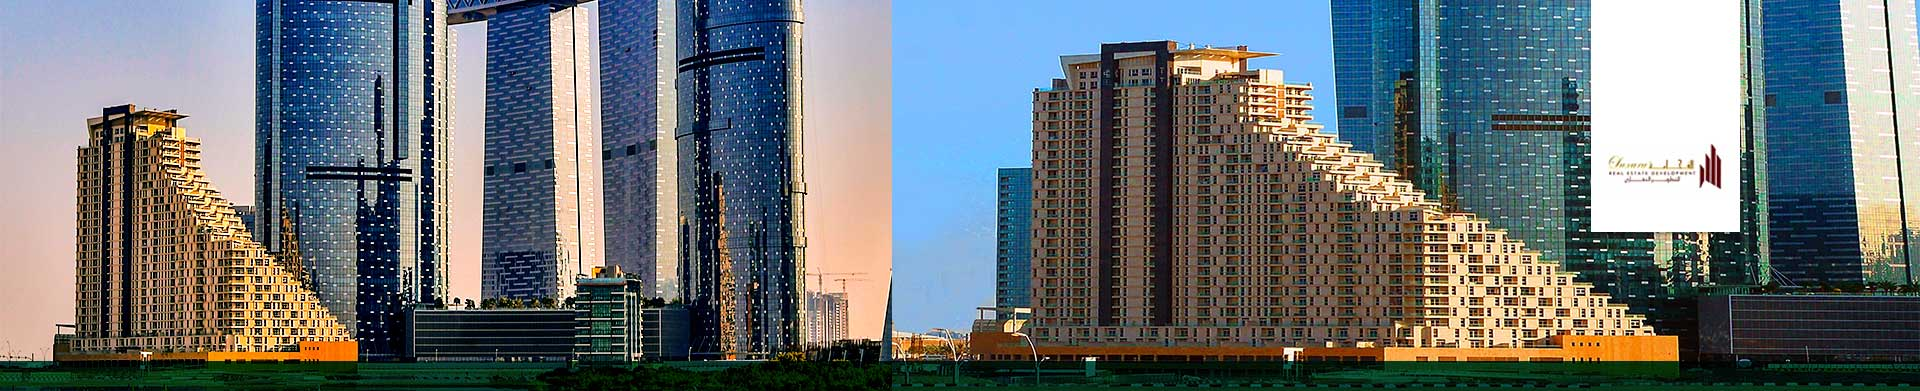 Real estate in Abu Dhabi uae